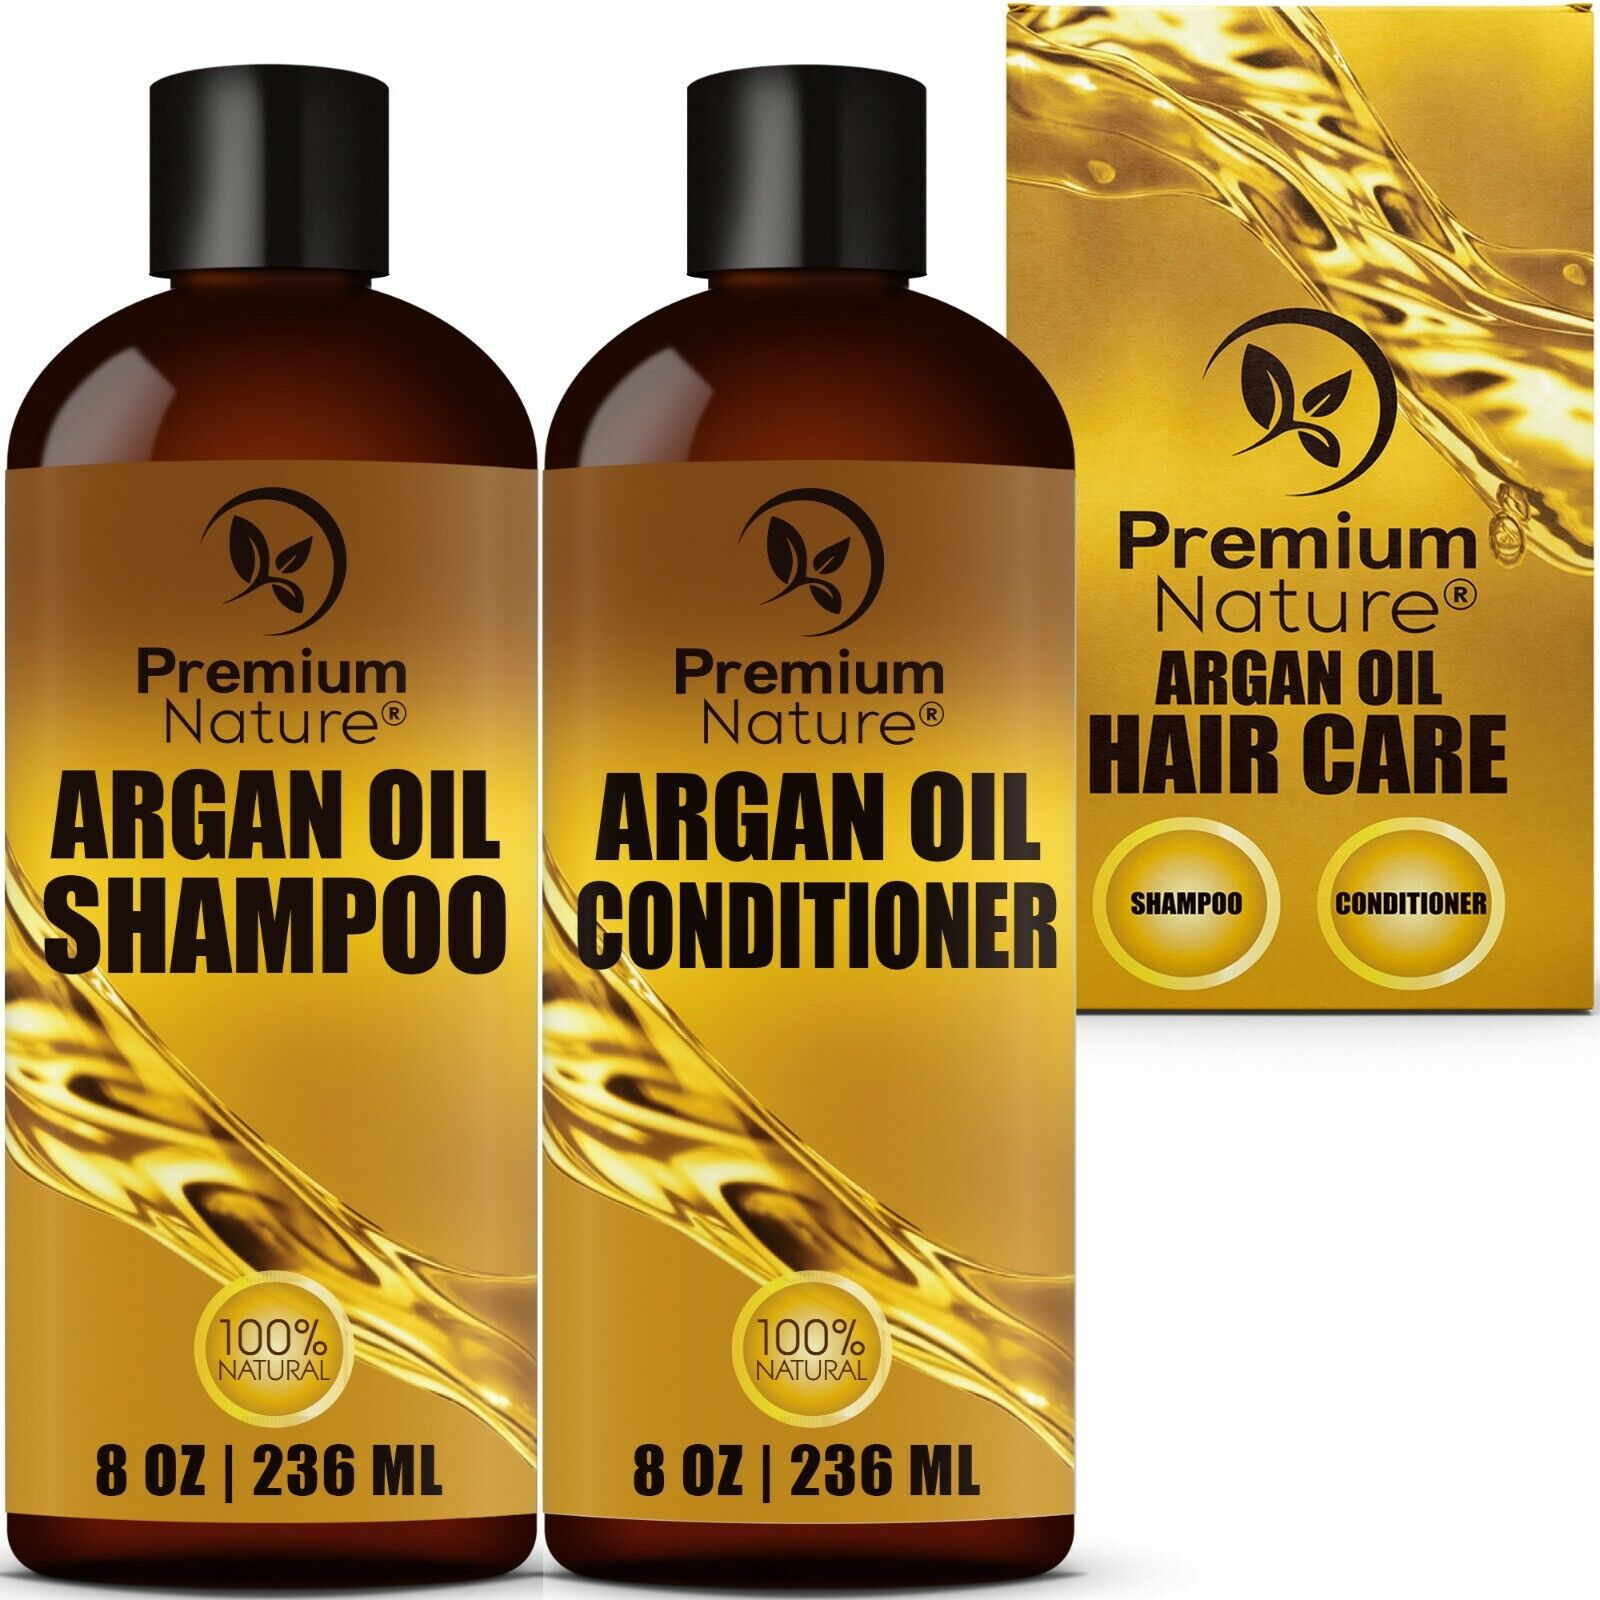 Argan Oil Shampoo and Conditioner Sulfate Free All Natural H